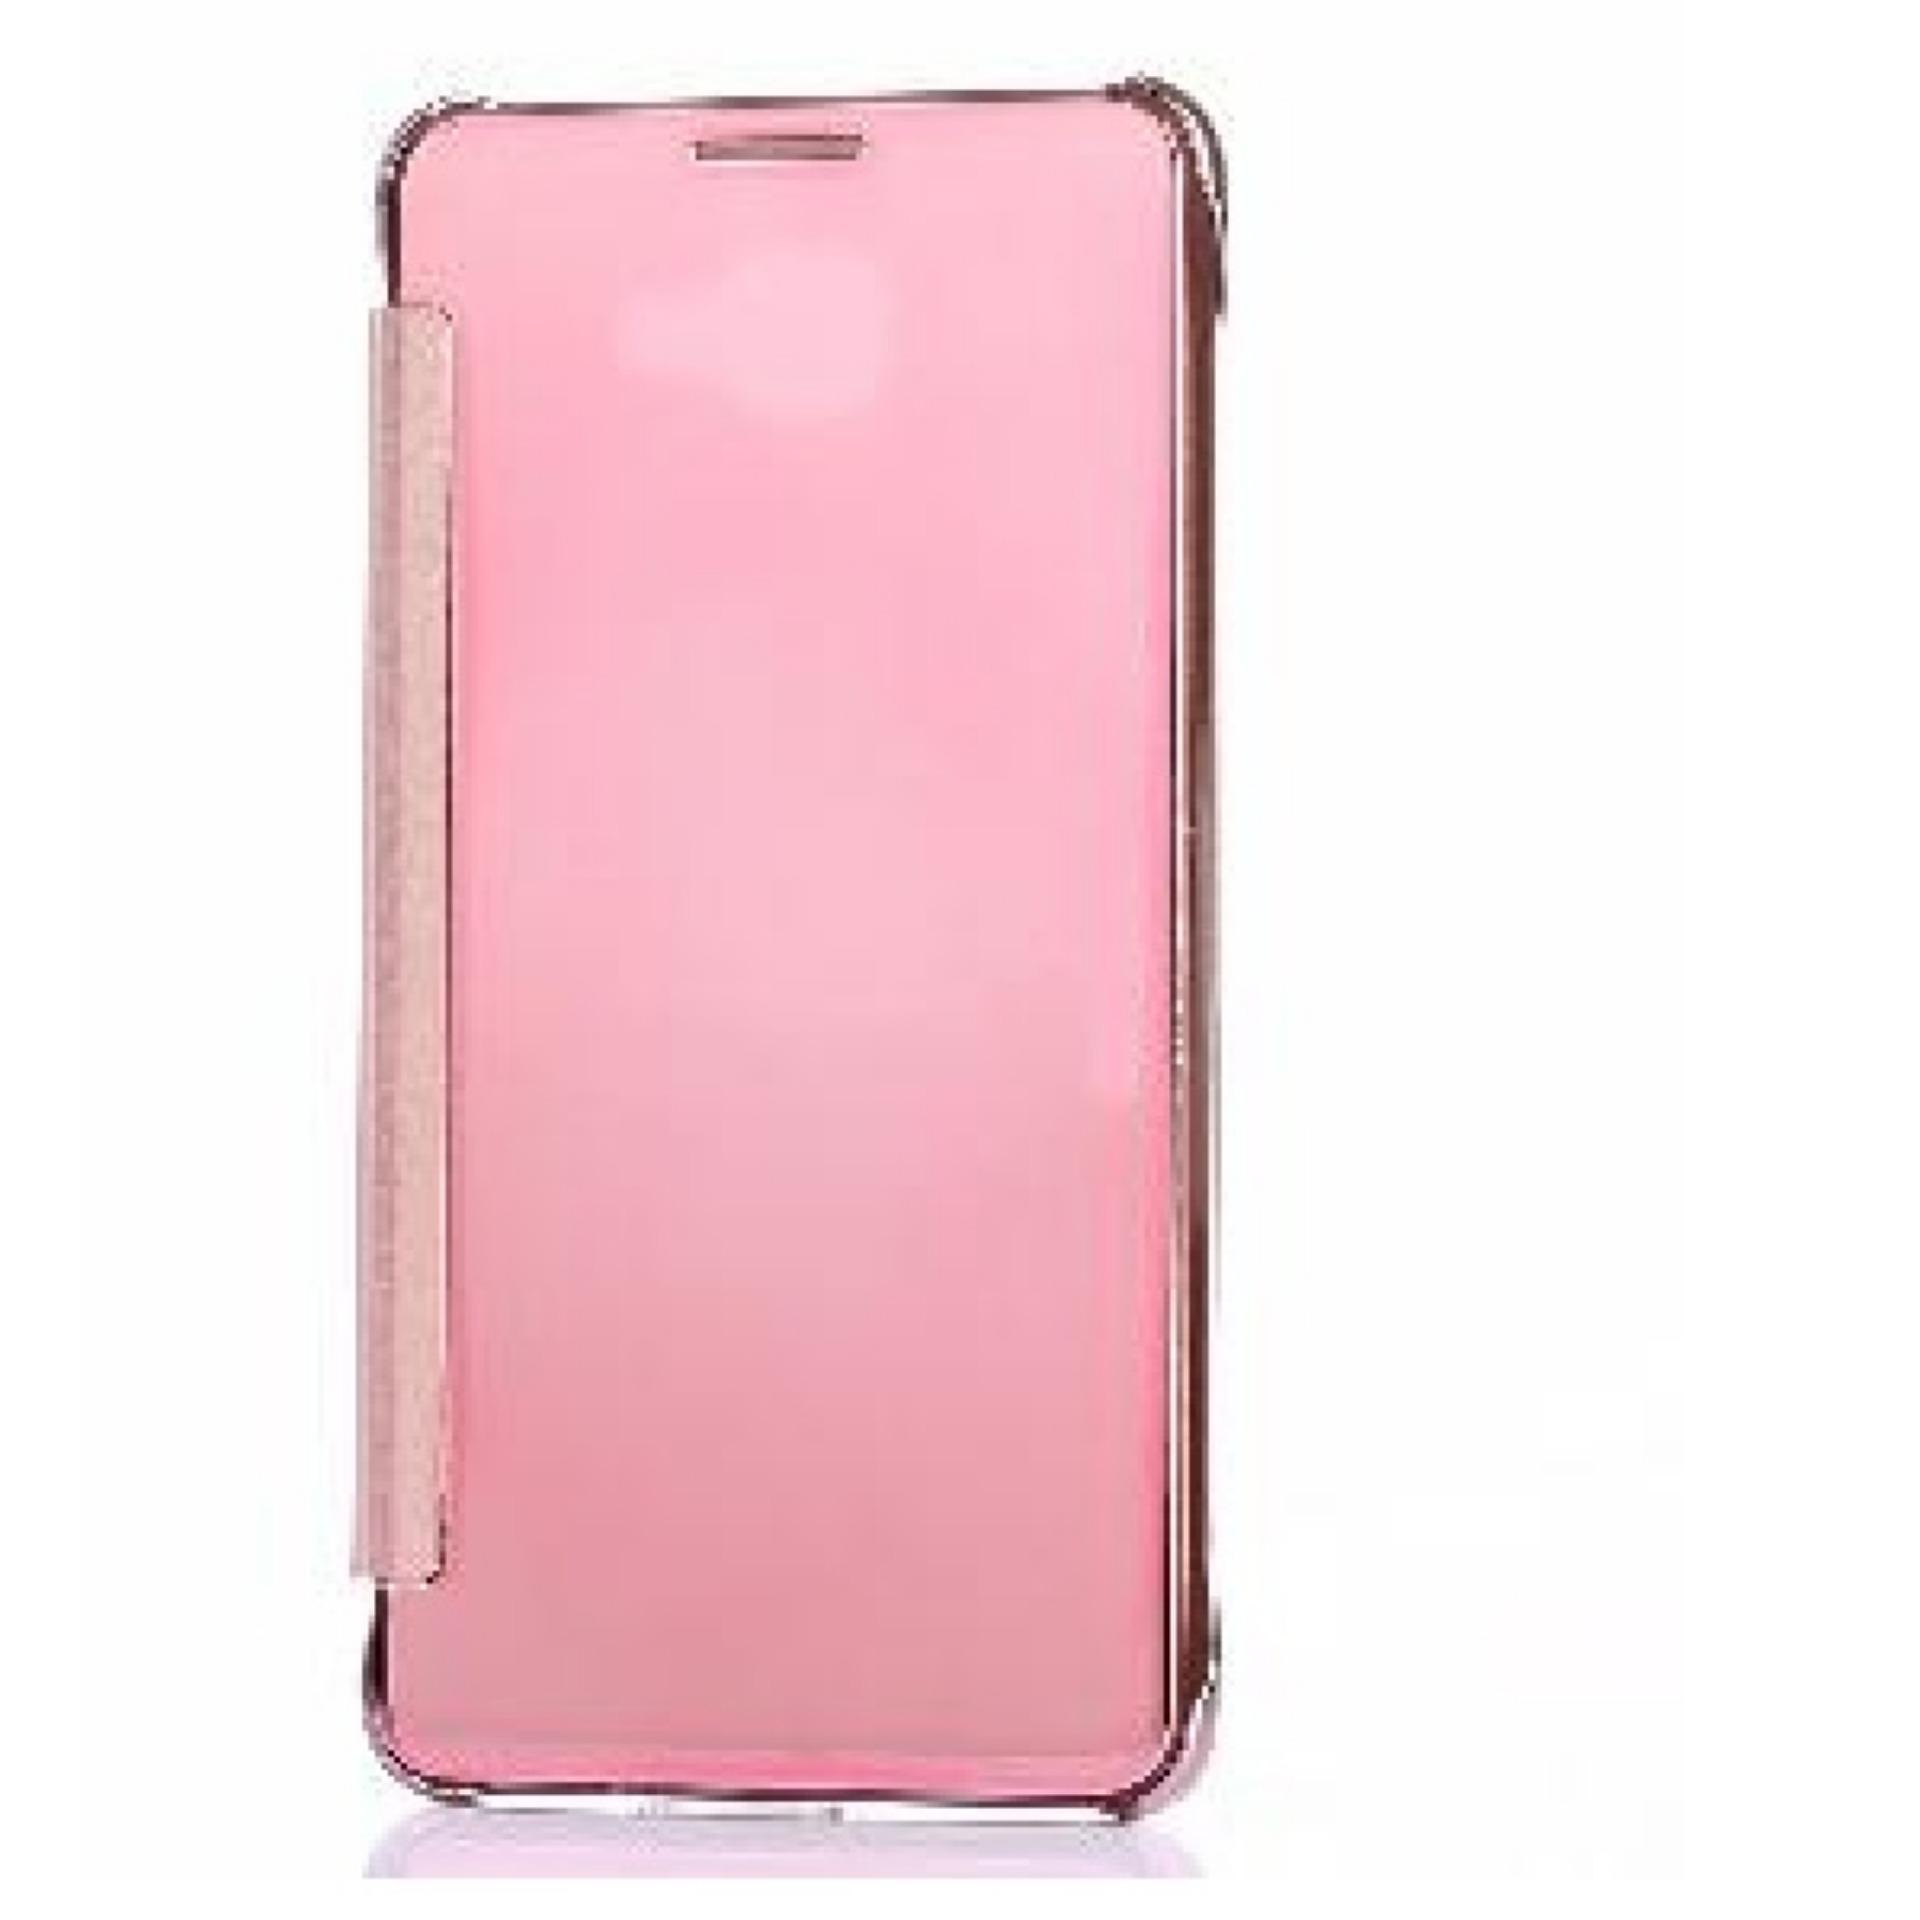 Executive Chanel Case Samsung Galaxy J7 Prime Flipcase Flip Mirror Cover S View Transparan Auto Lock ...